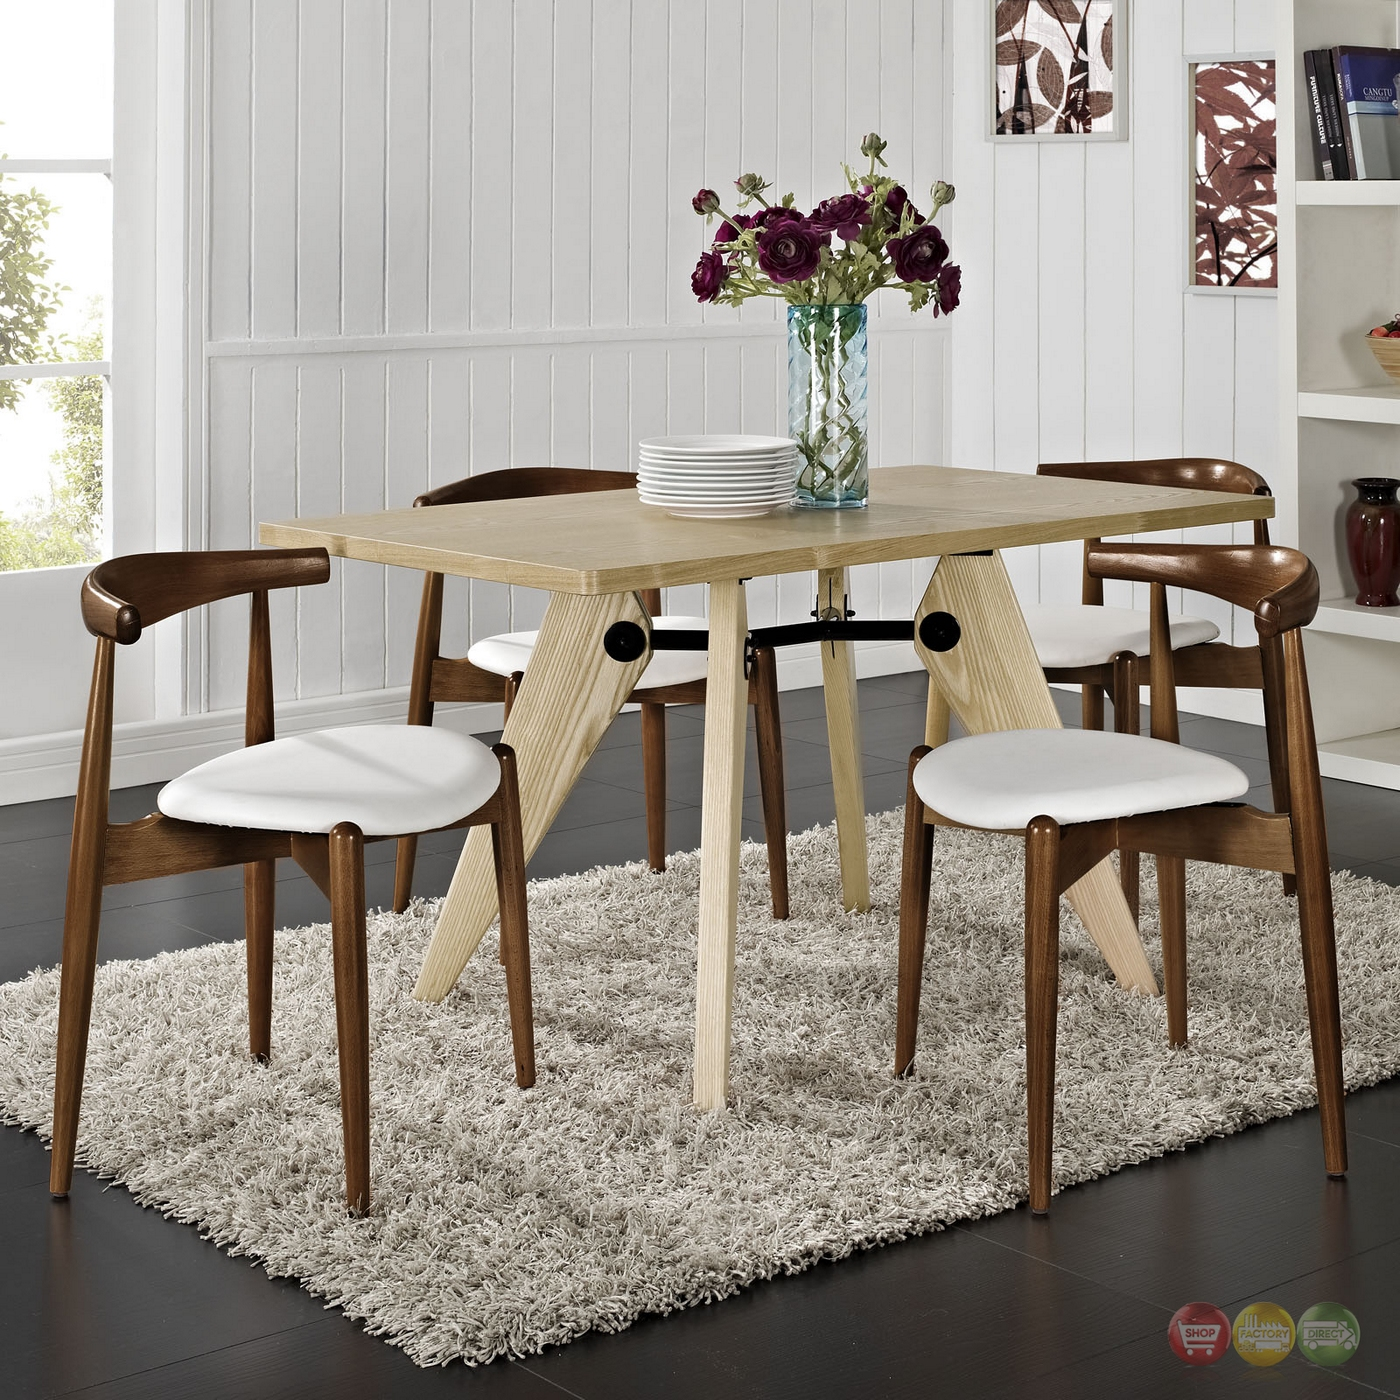 Wonderful image of  Wood Dining Side Chairs w/ Upholstered Seats Dark Walnut White with #63432F color and 1400x1400 pixels